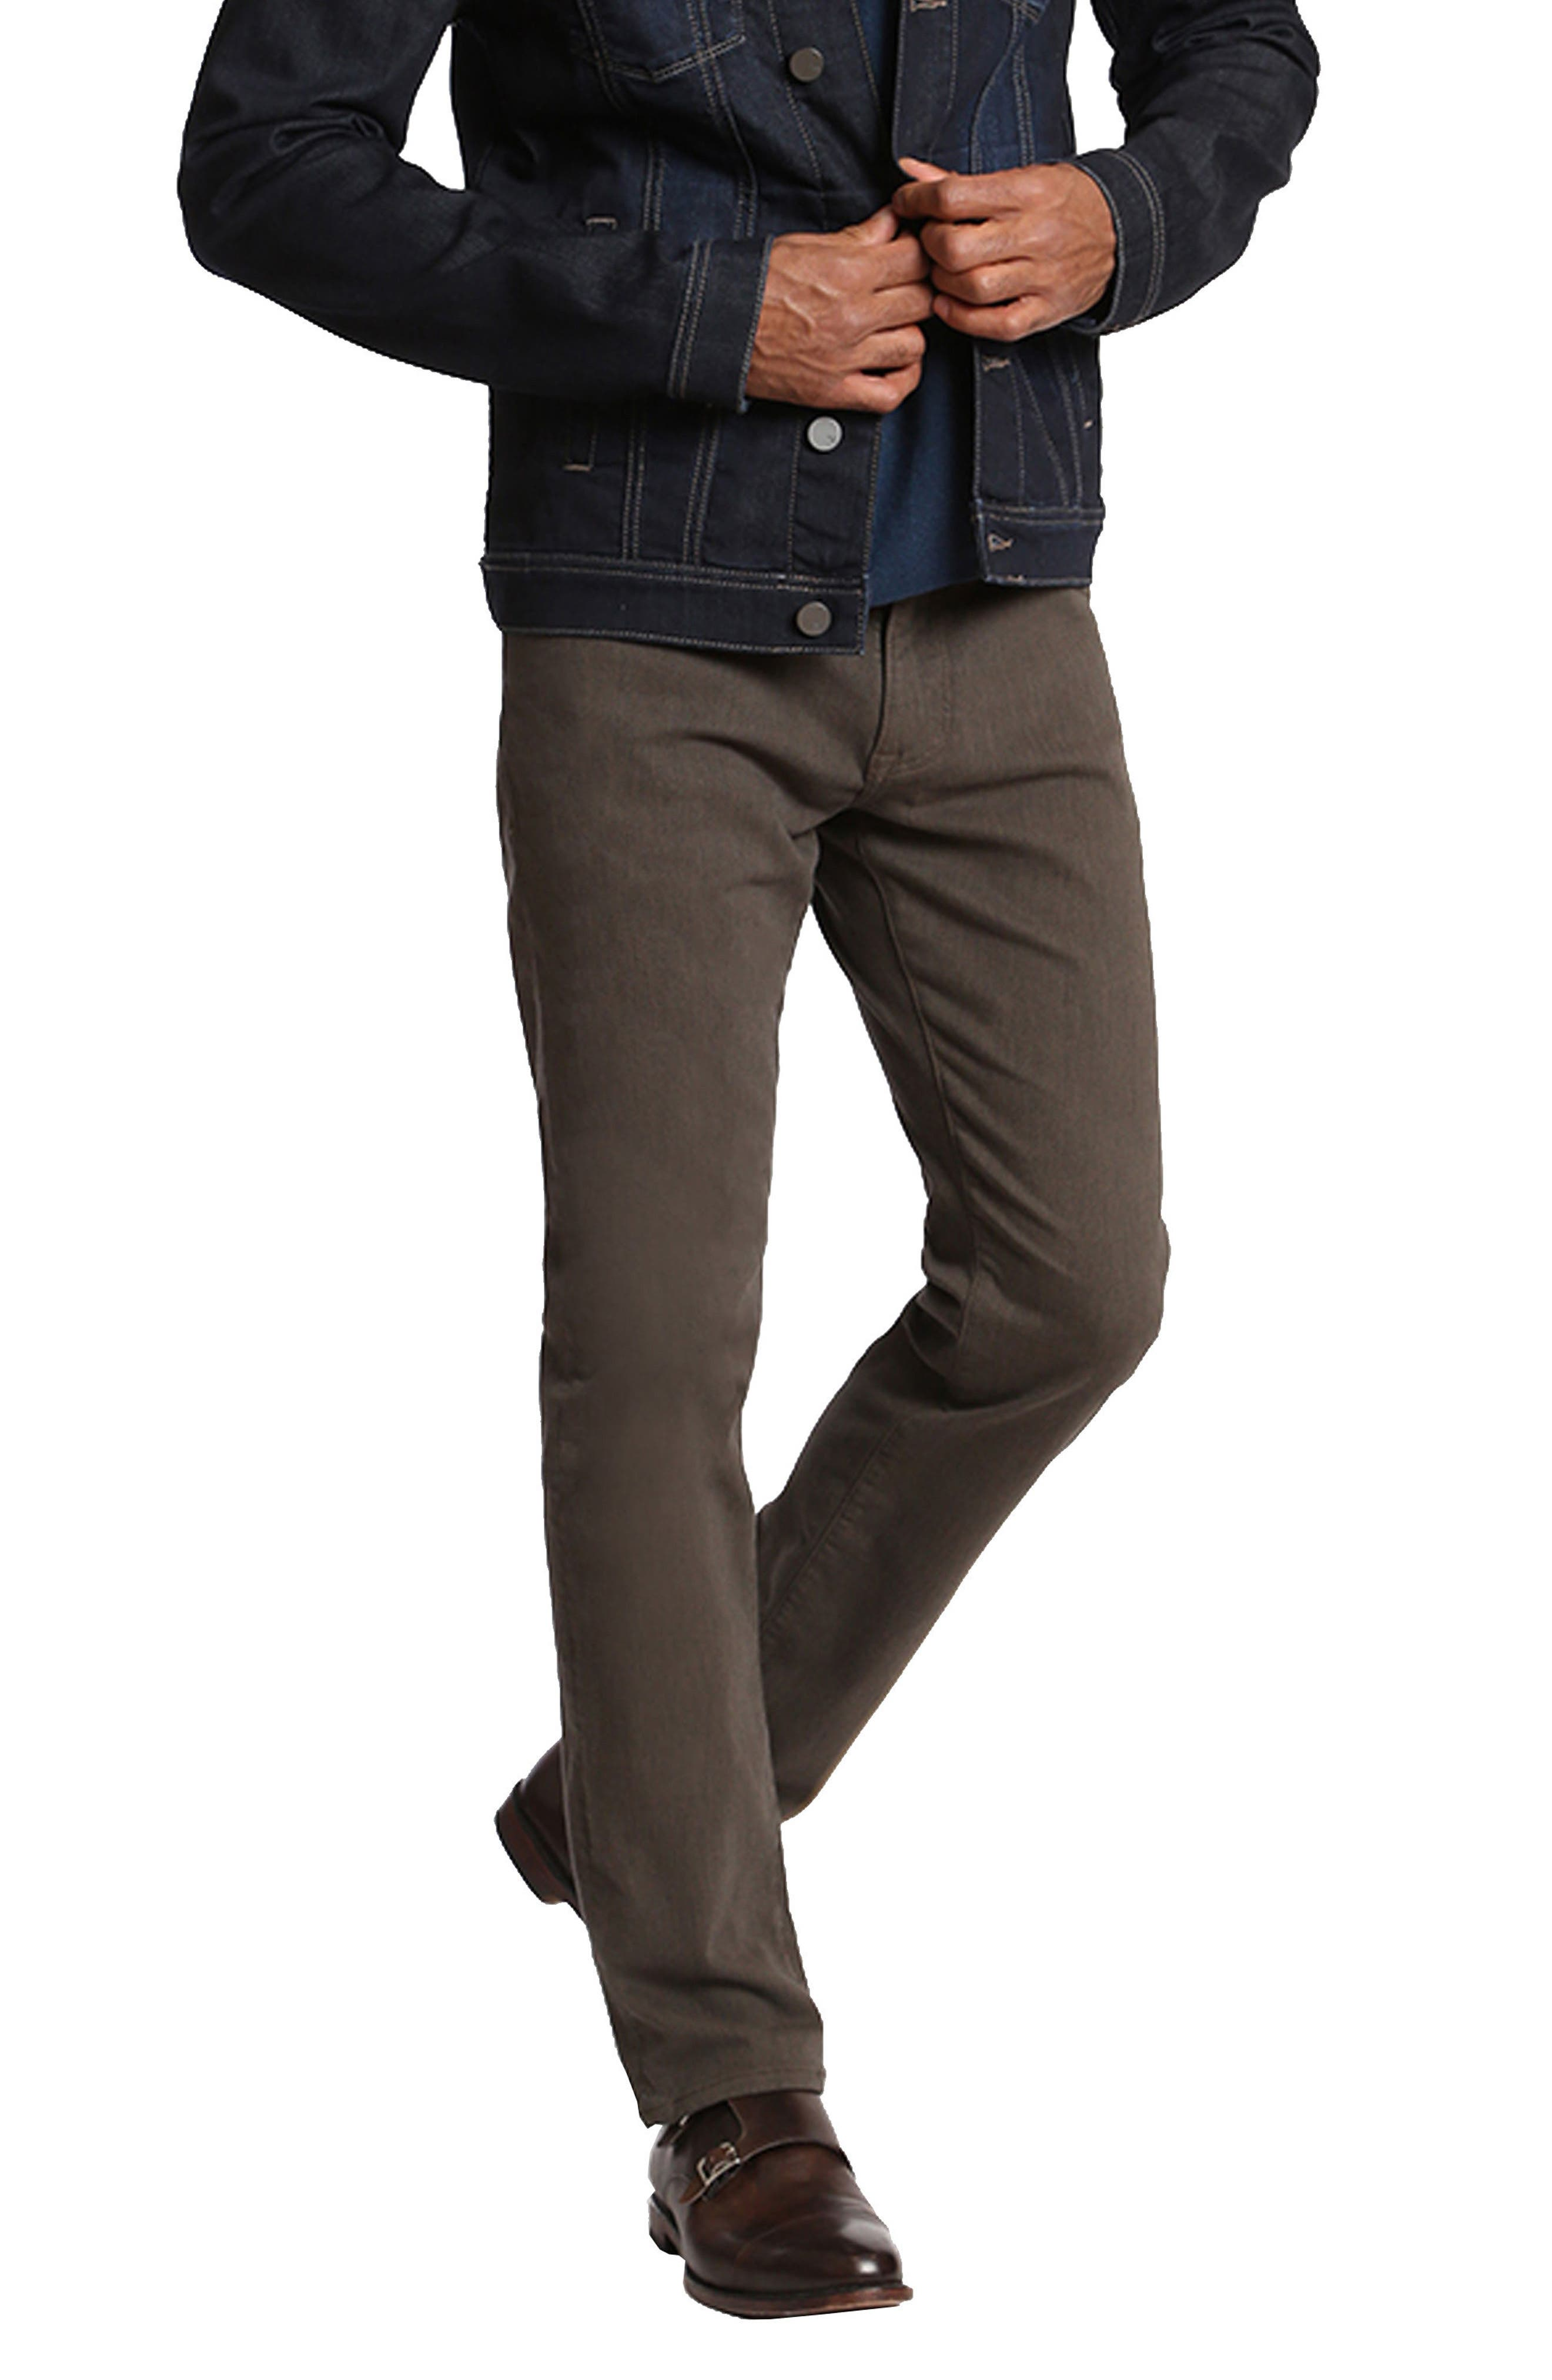 Charisma Relaxed Fit Jeans,                             Alternate thumbnail 7, color,